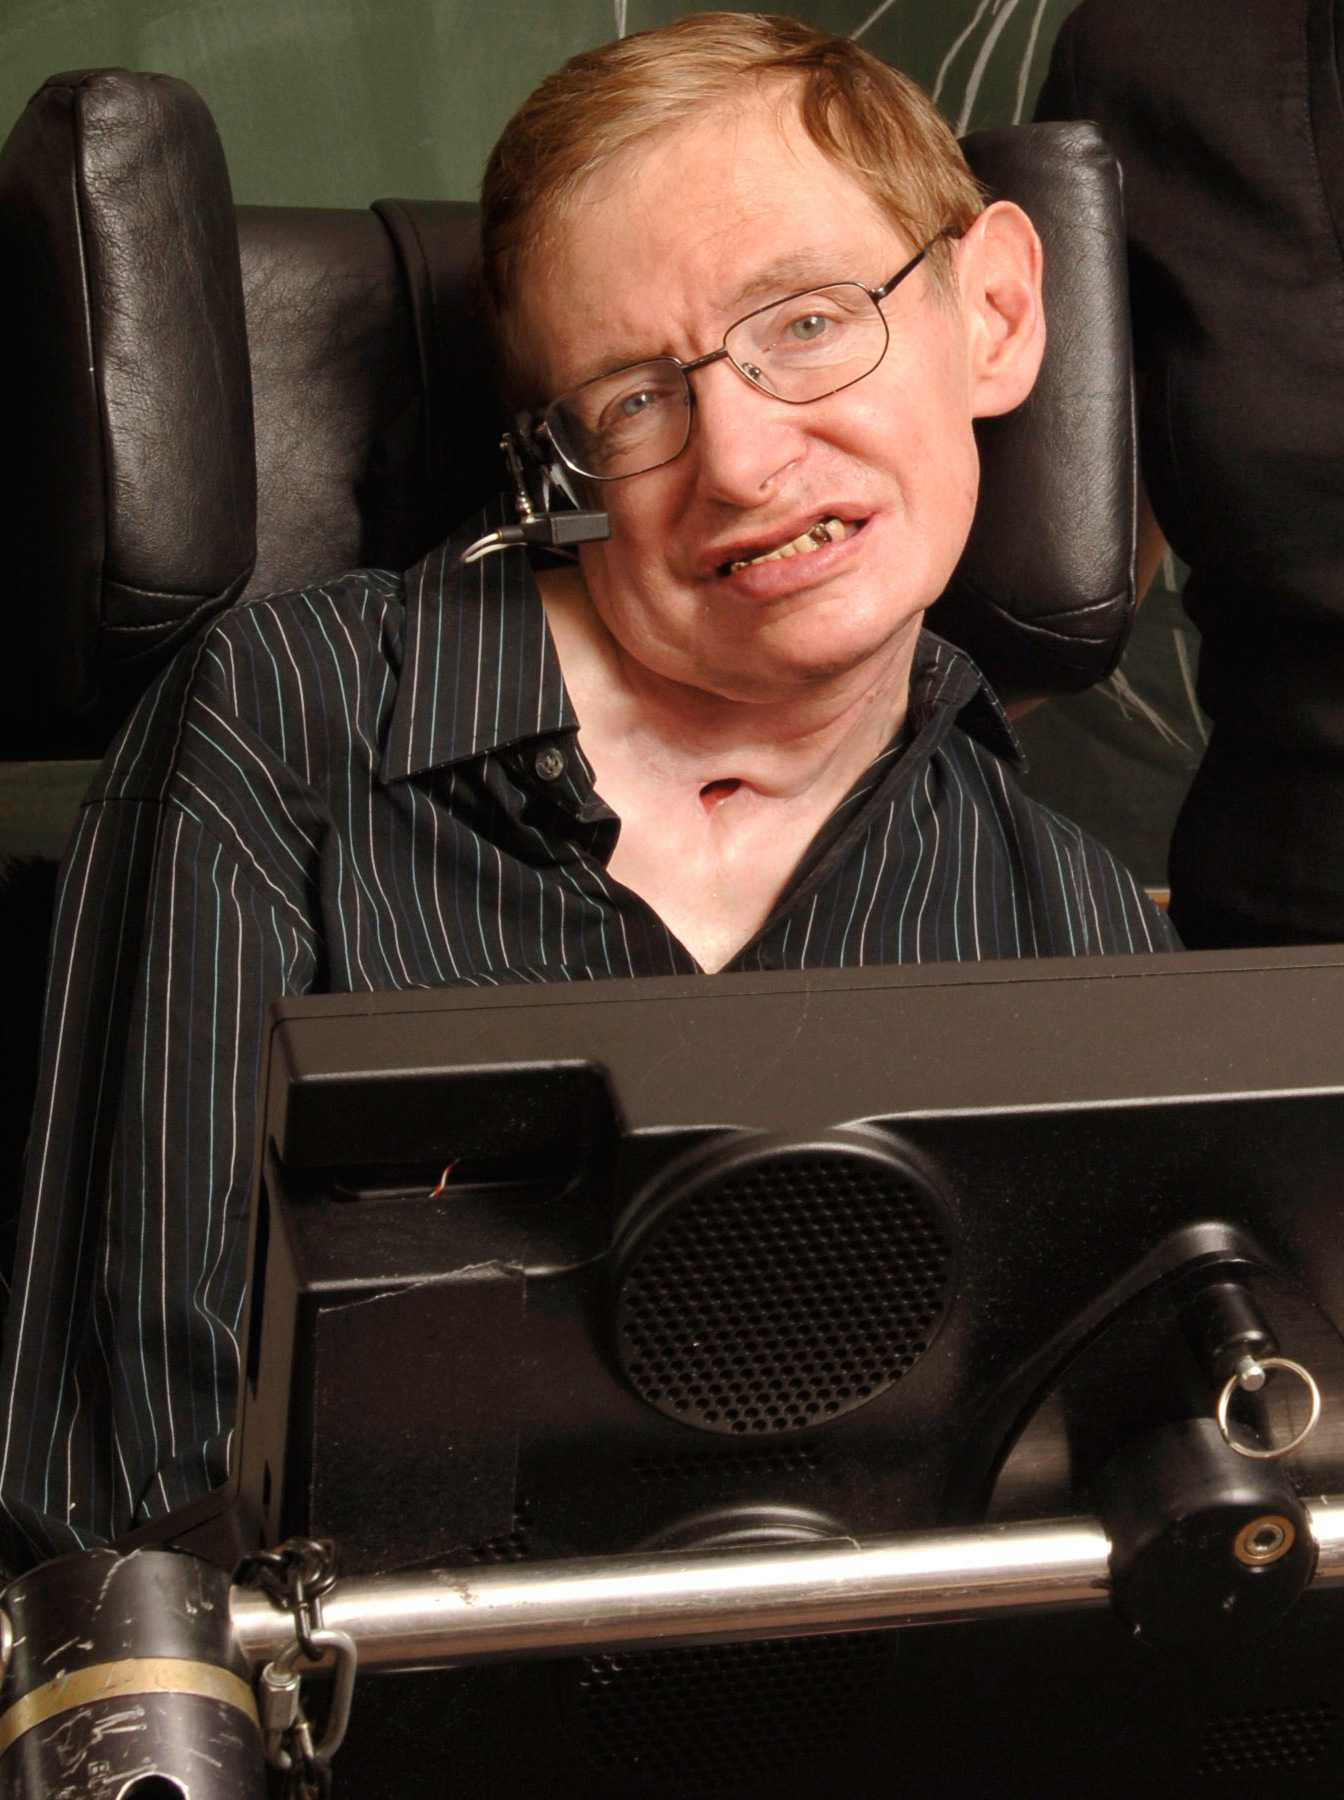 Stephen Hawking Answers The Hard Questions For His Reddit AMA | Stephen Hawking